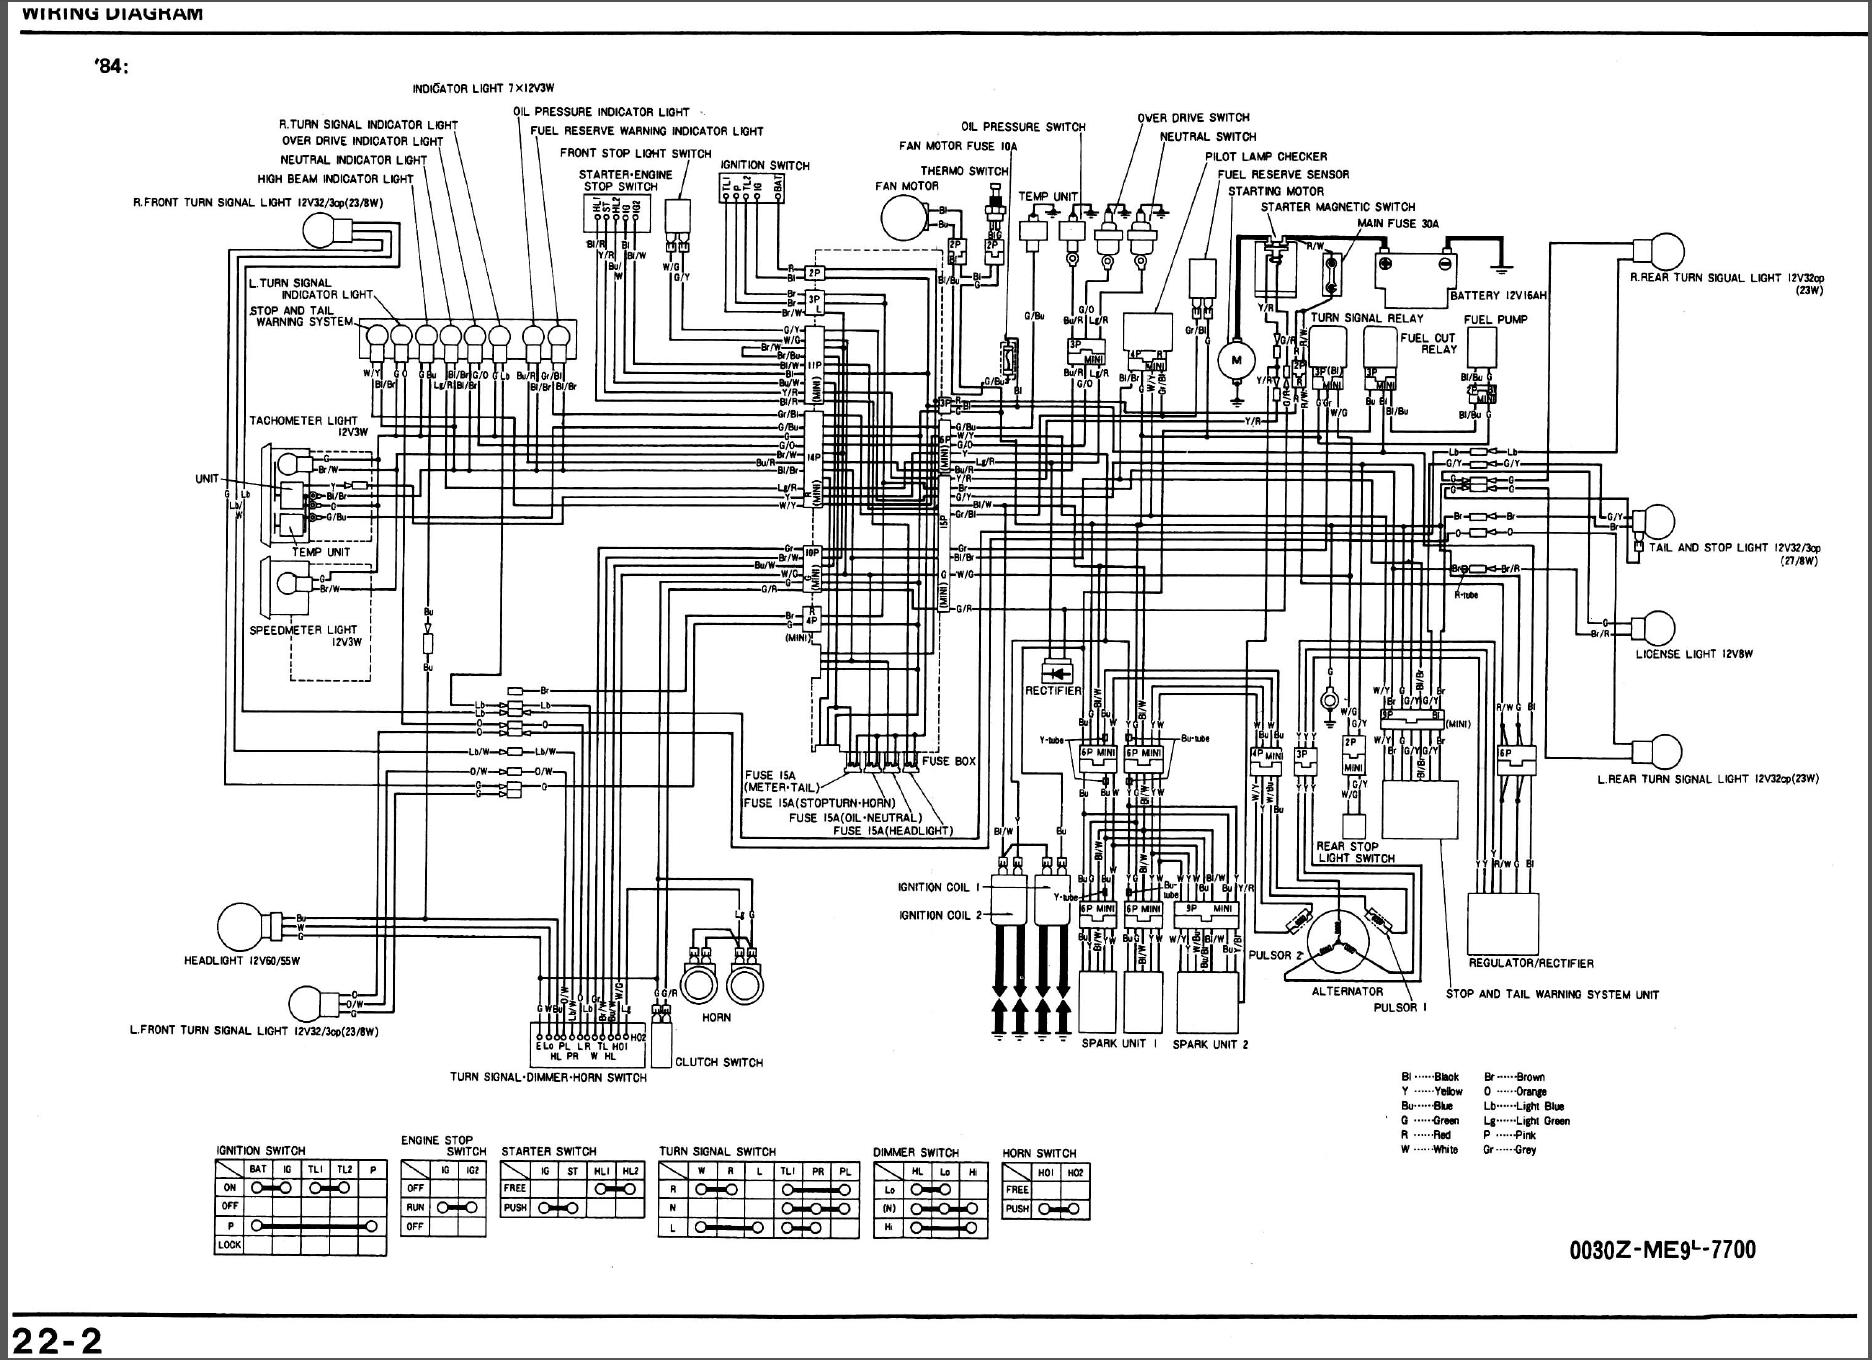 1984 Honda Shadow Vt700 Wiring Diagram : 38 Wiring Diagram